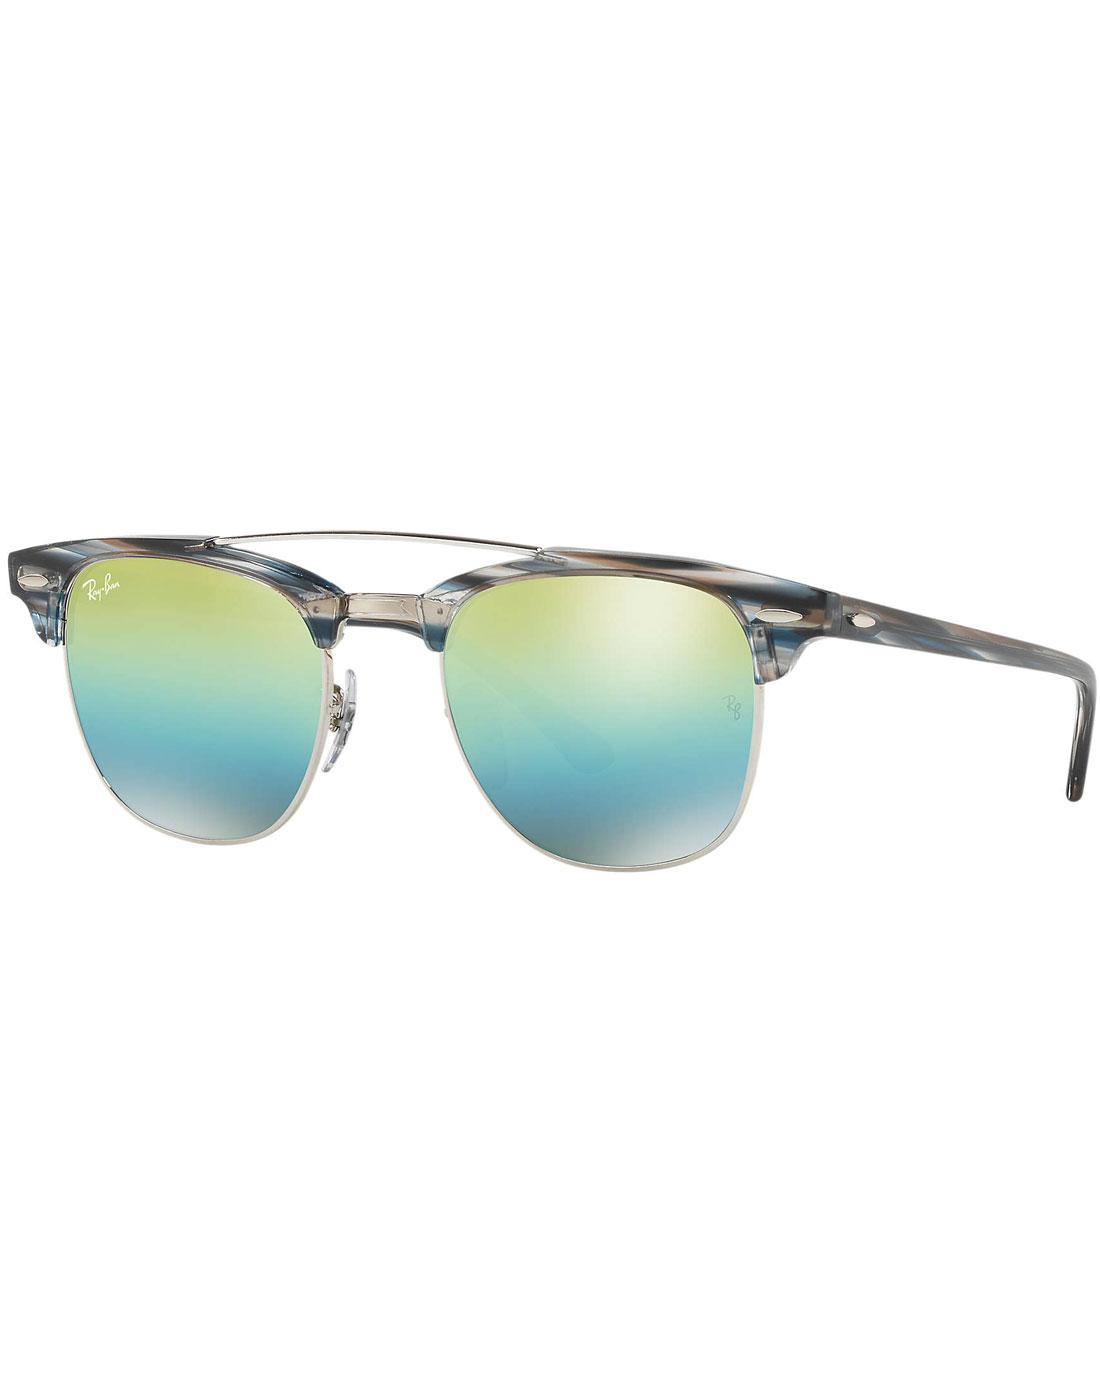 Clubmaster RAY-BAN Double Bridge Sunglasses SILVER